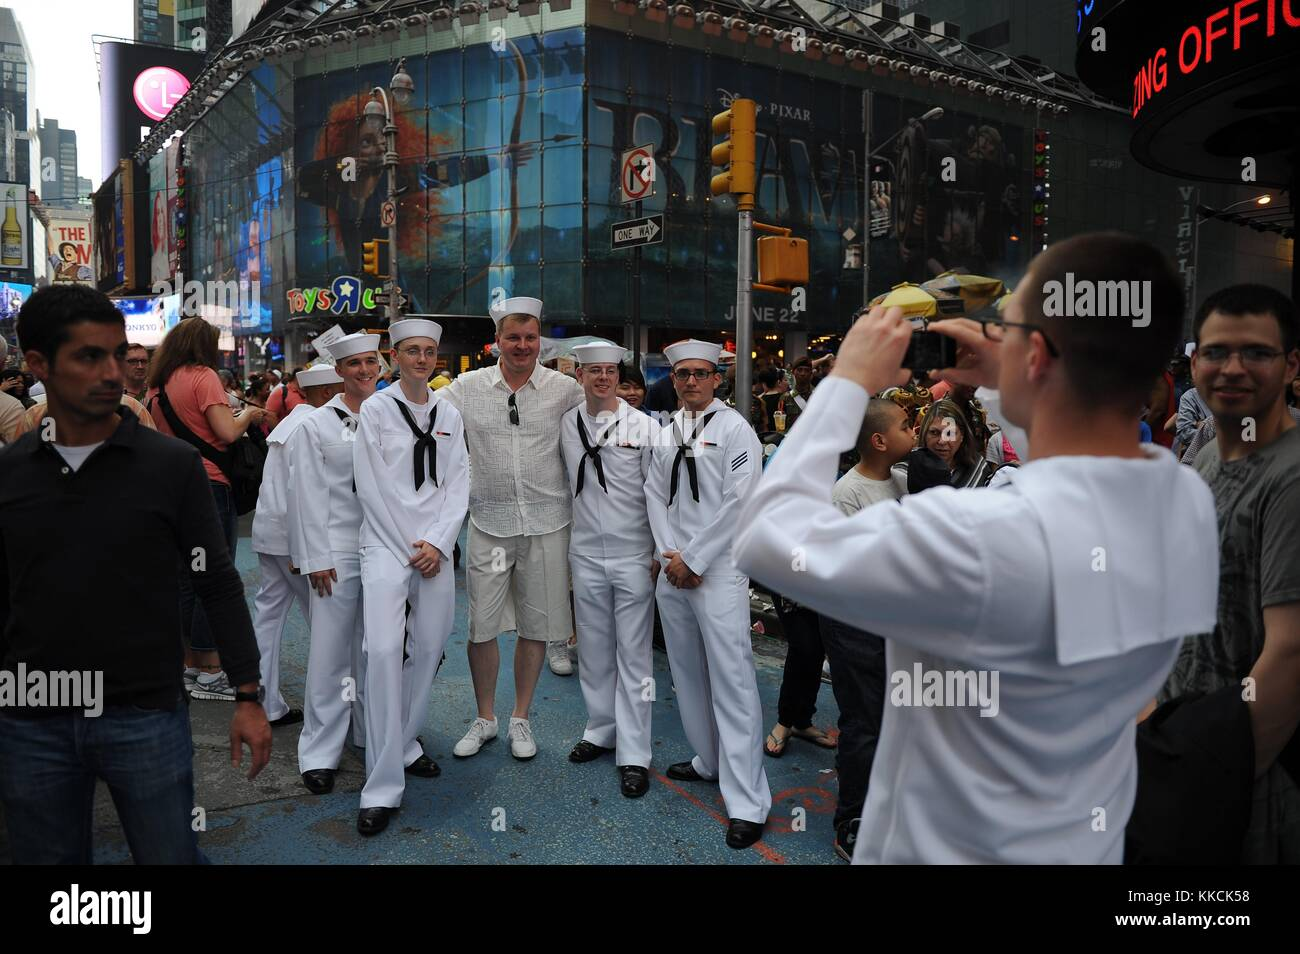 Sailors pose for photos during Fleet Week, New York. Image courtesy Mass Communication Specialist 1st Class Arif - Stock Image